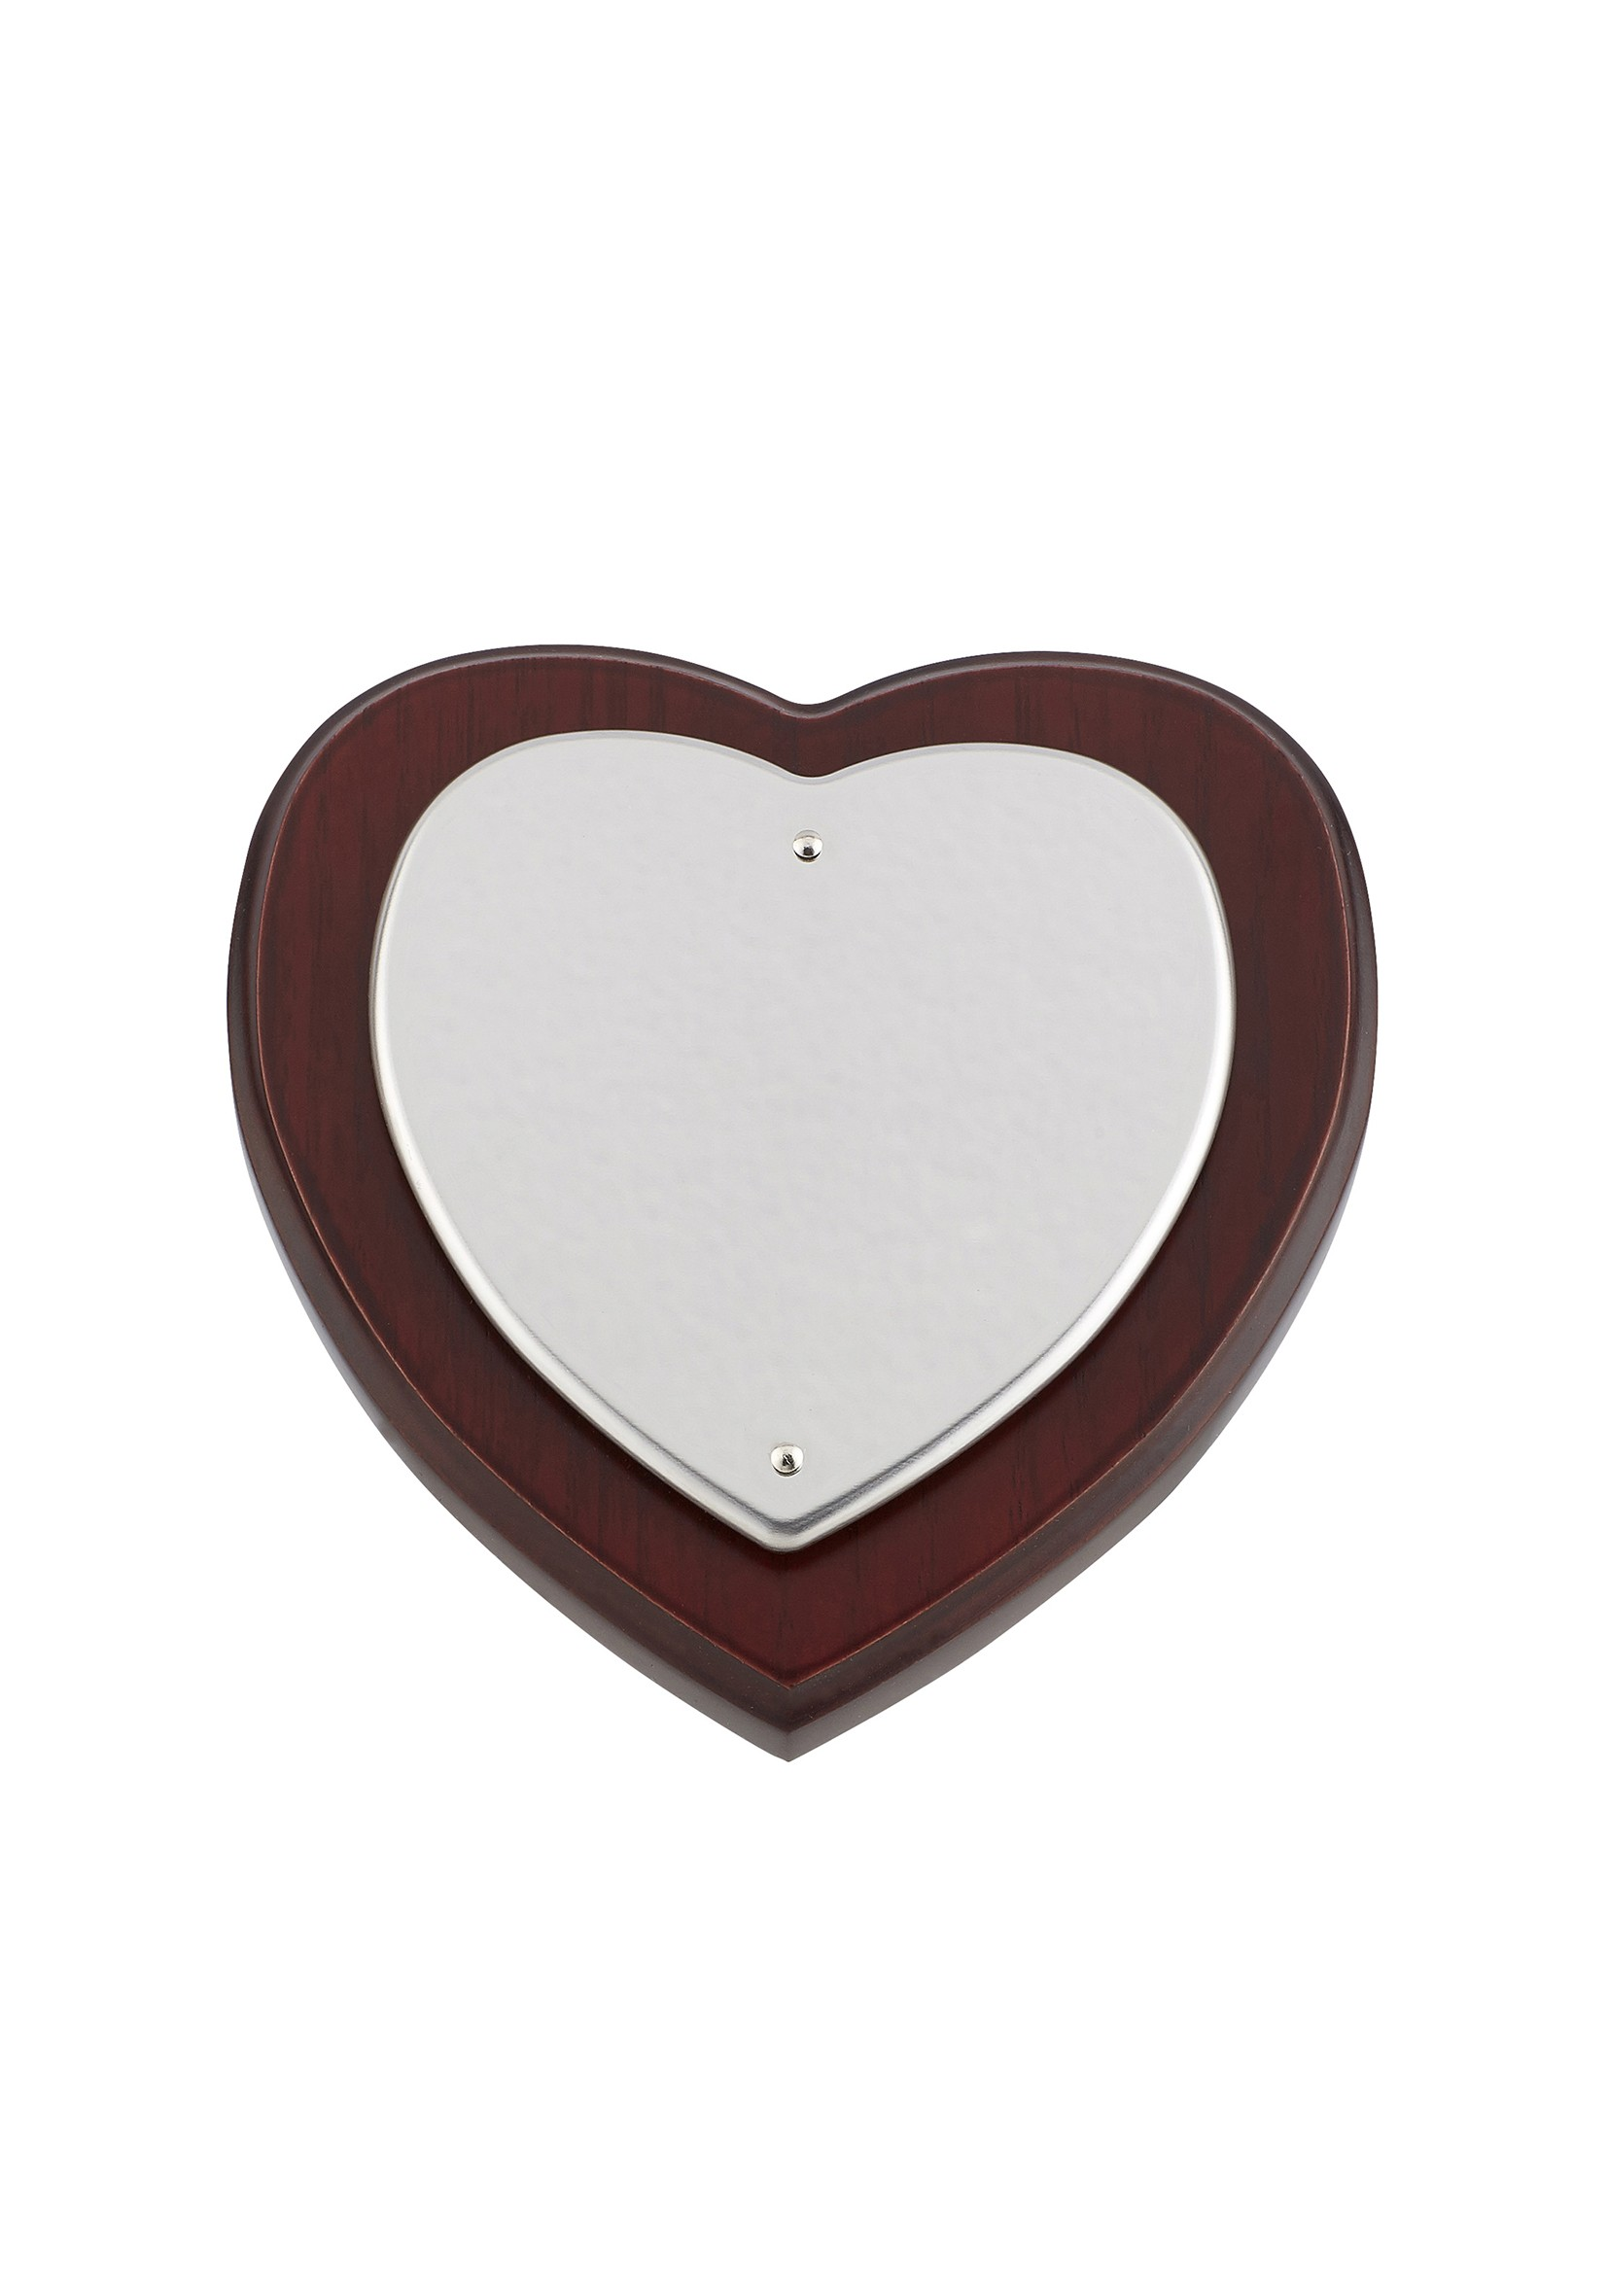 MB Heart Shield